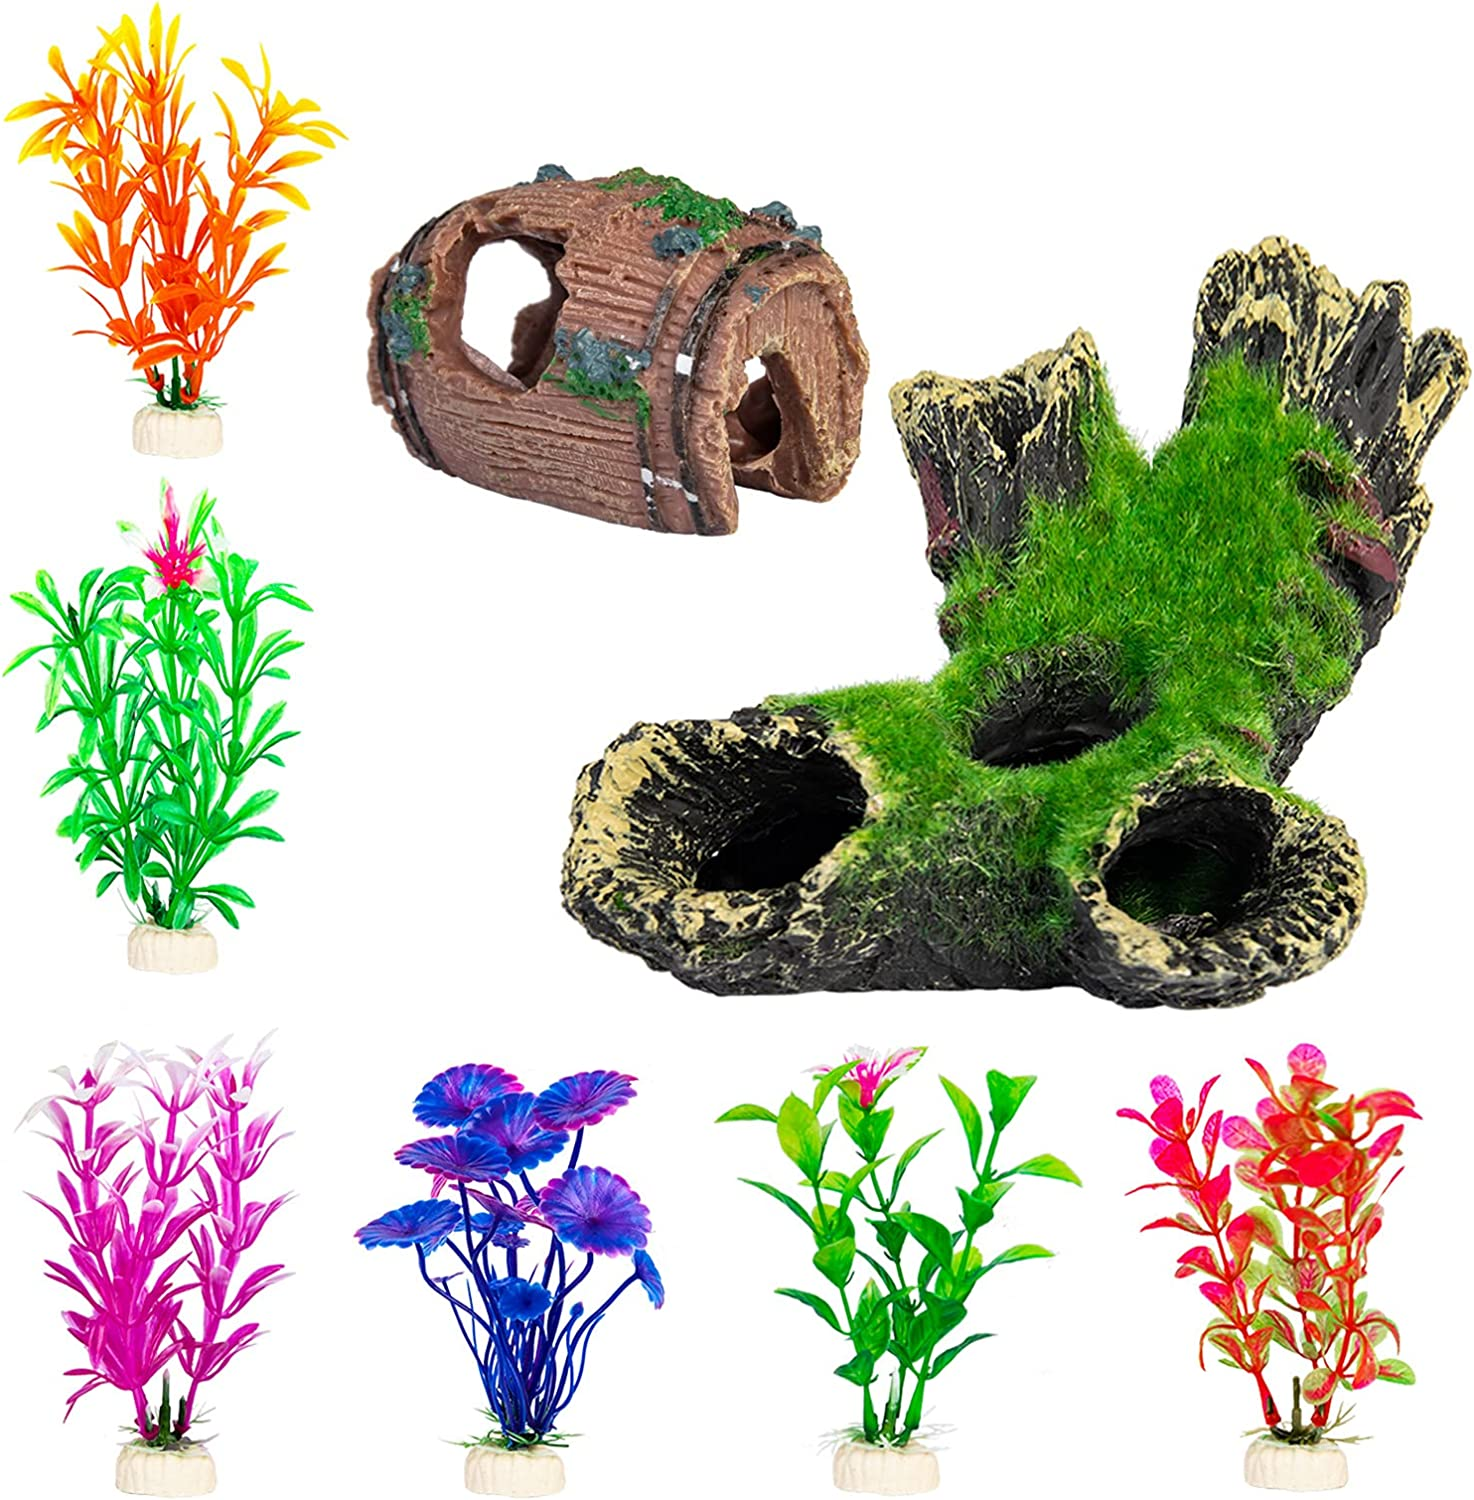 CousDUoBe Aquarium Fish Tank Decorations Accessories, with Mossy Trunk and Hollow Baeerl Hiding Place, Suitable for Home Office Aquarium Decorations